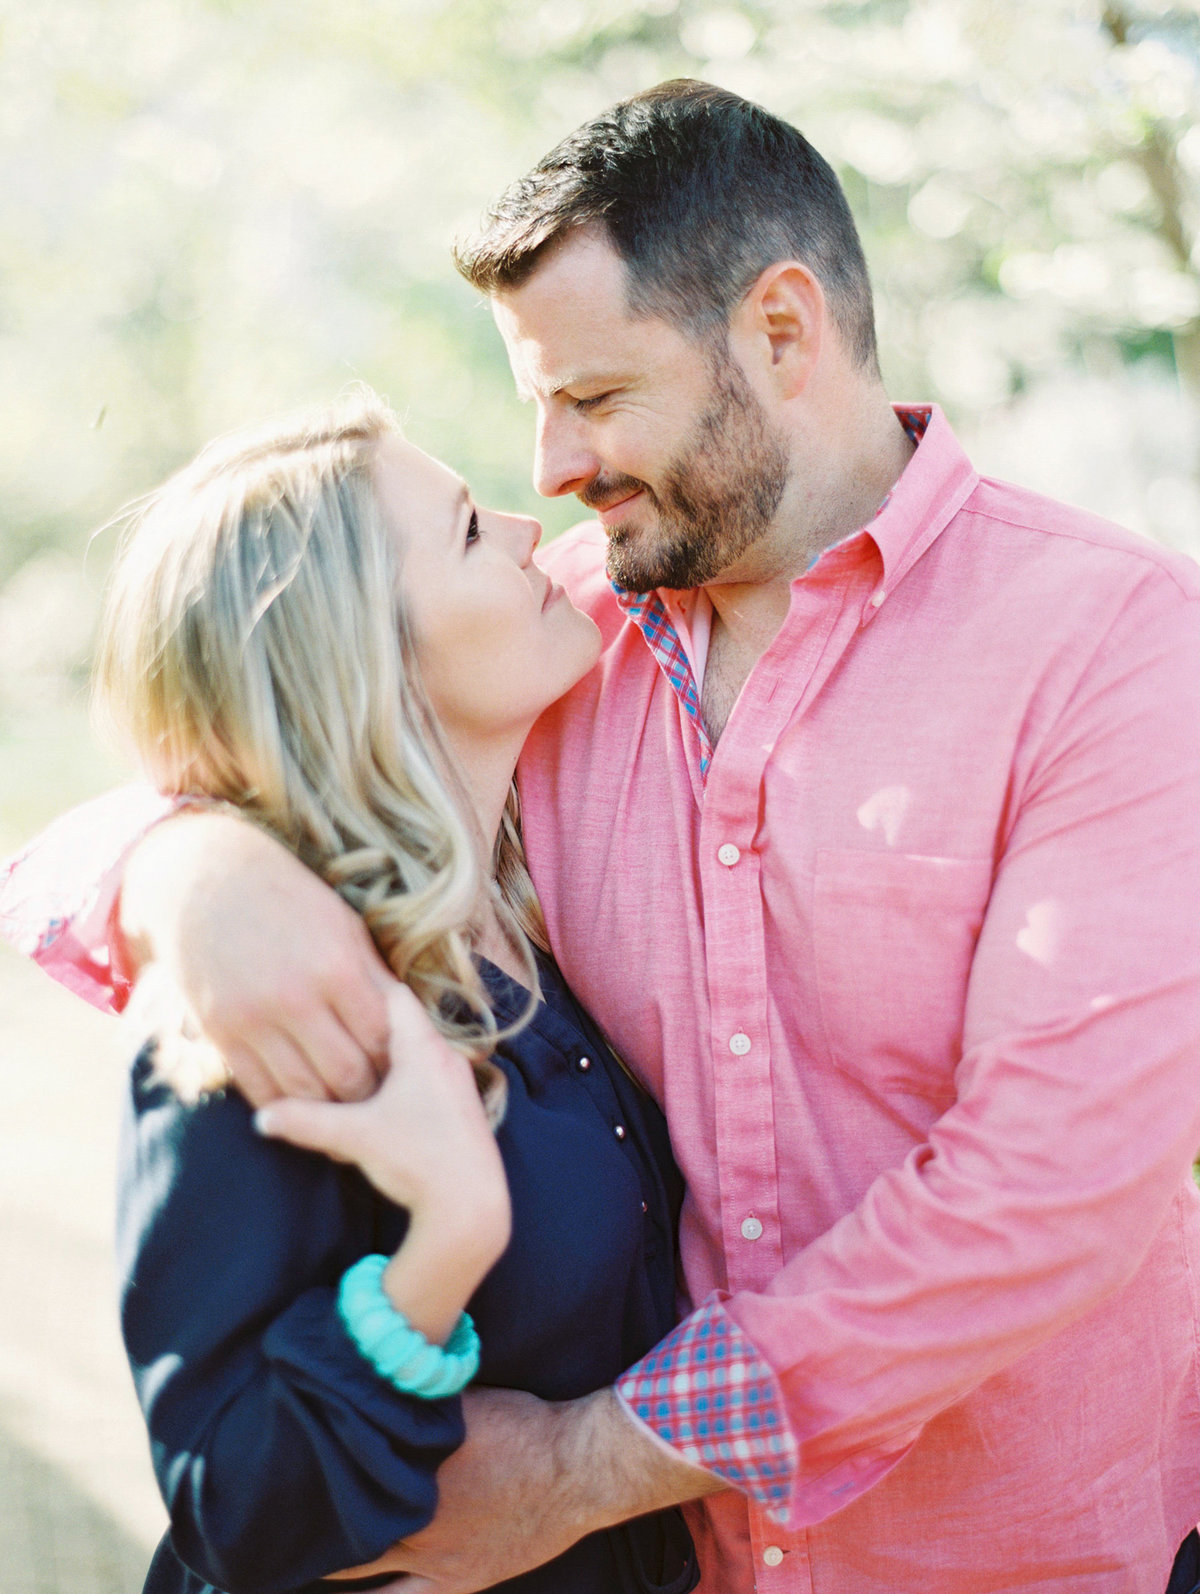 Courtney Hanson Photography - Dallas Spring Engagement Photos-011